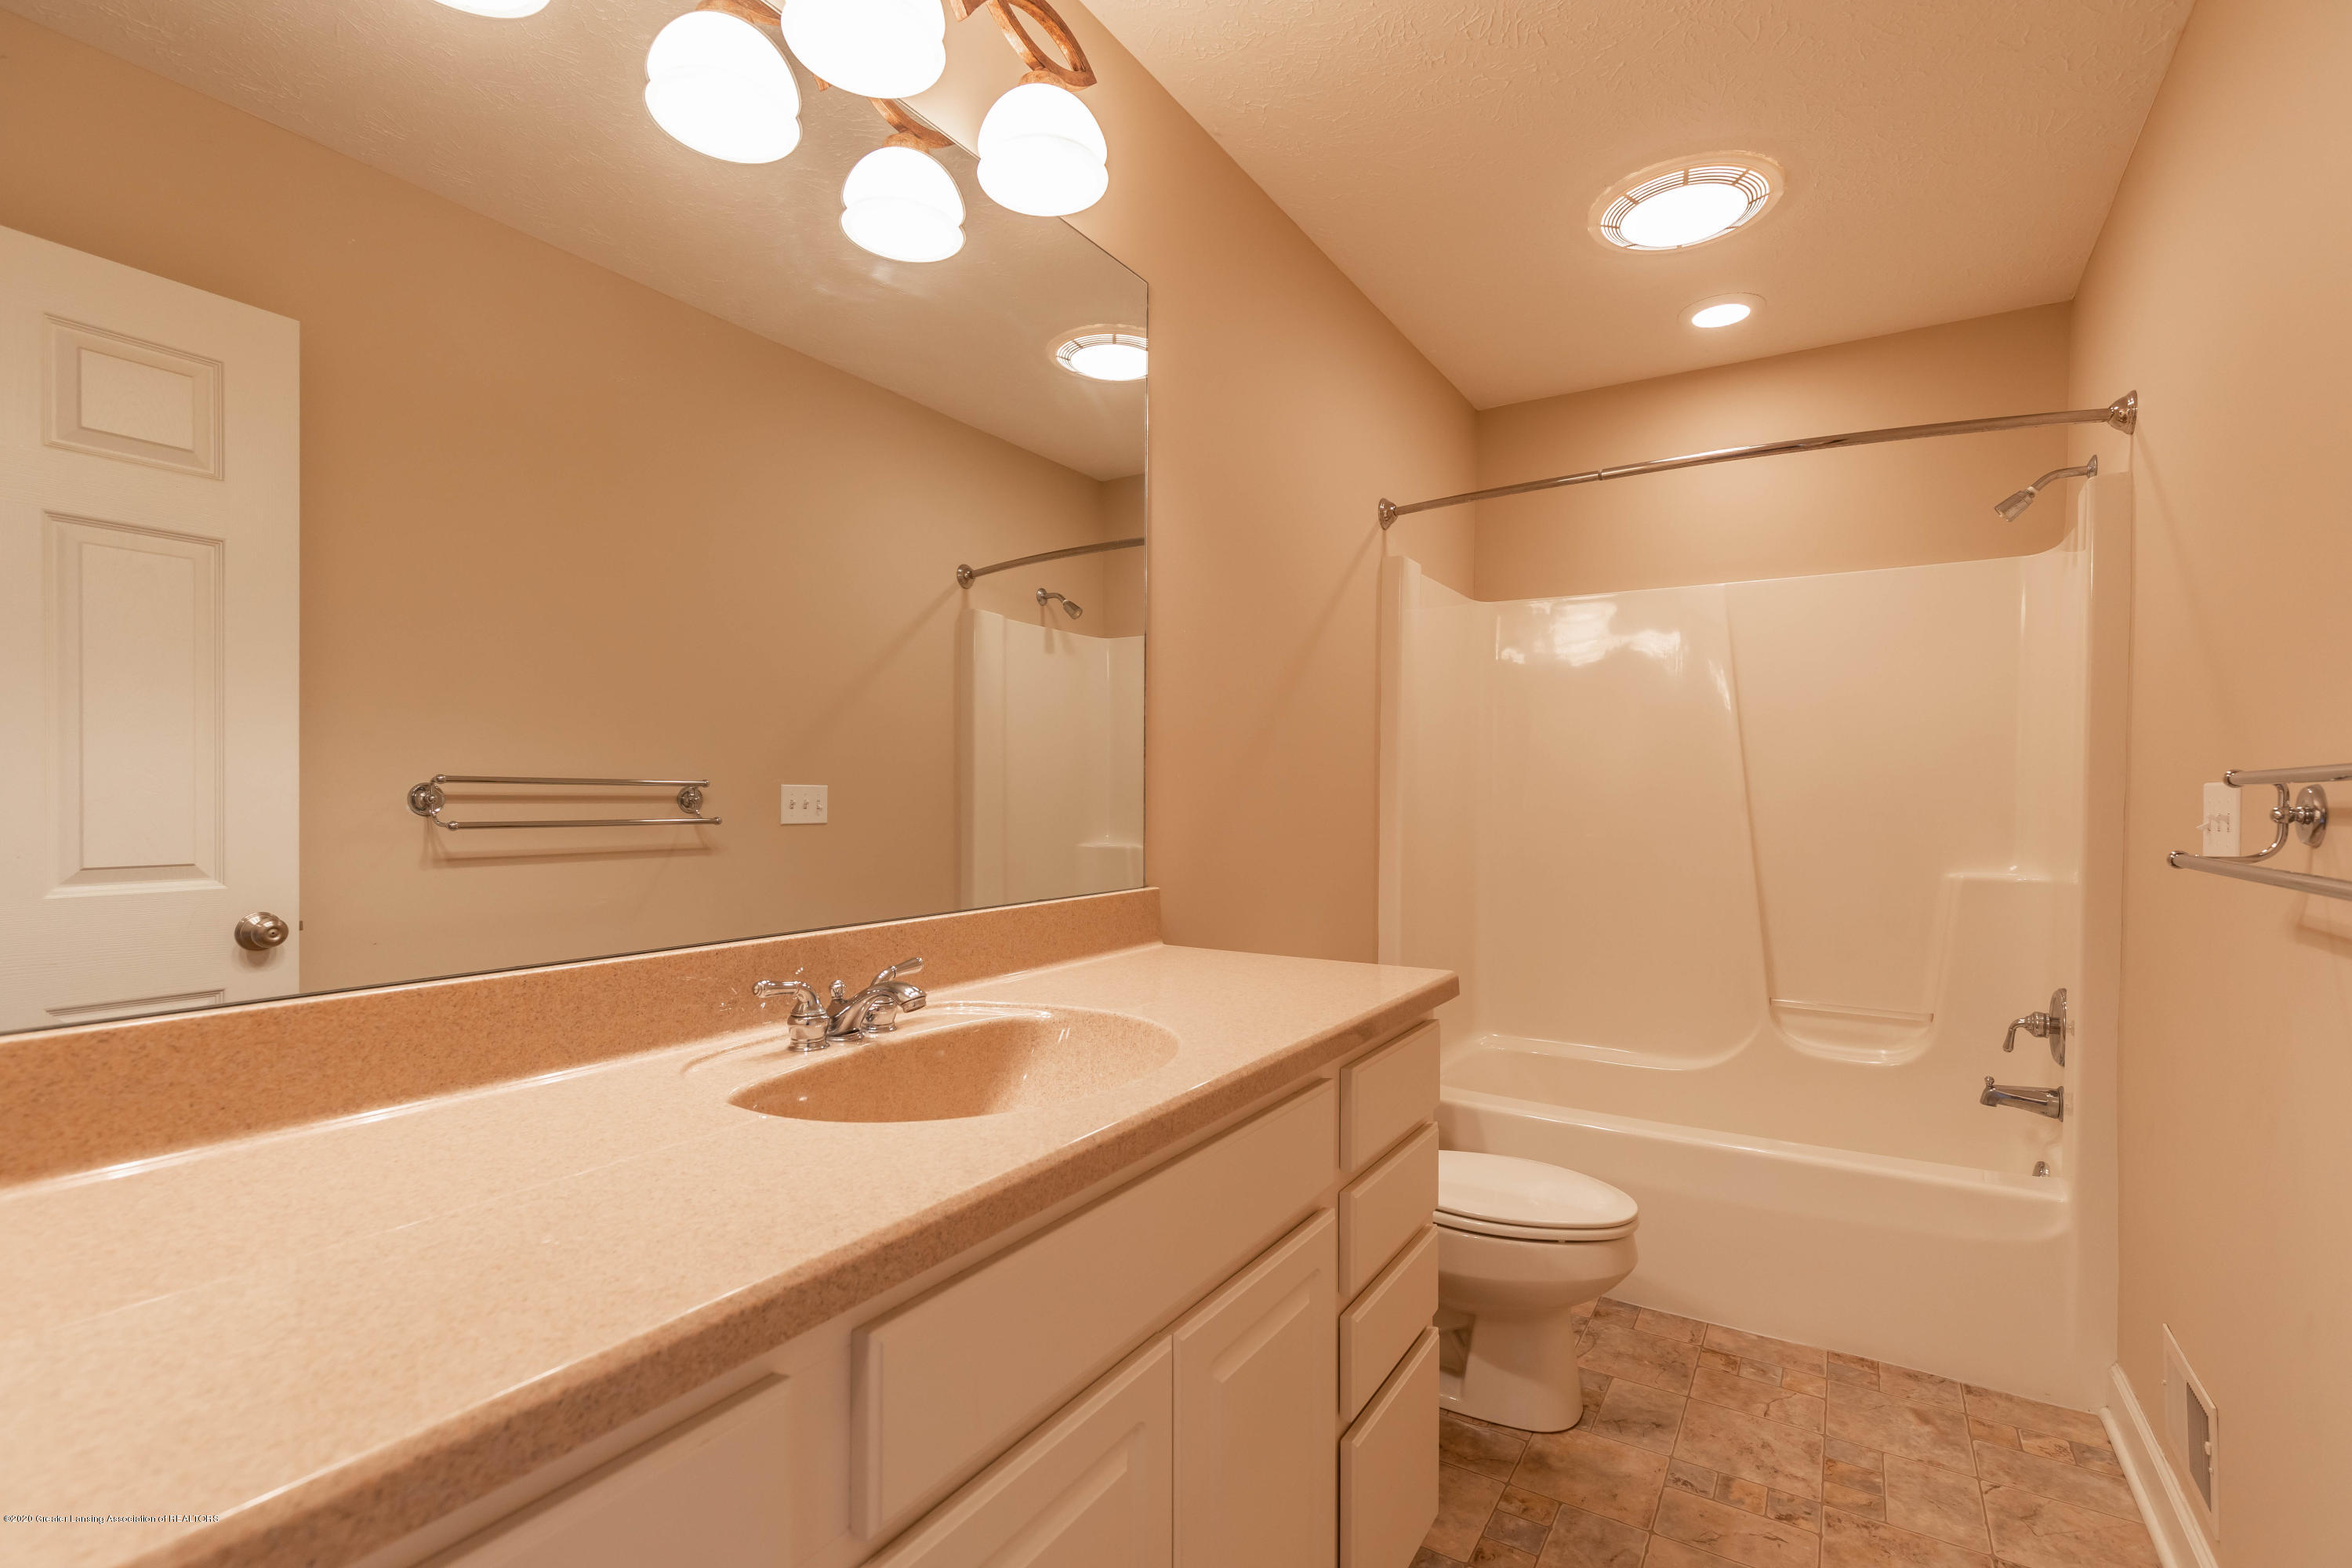 12810 Chartreuse Dr - chartreuseusbath (1 of 1) - 36